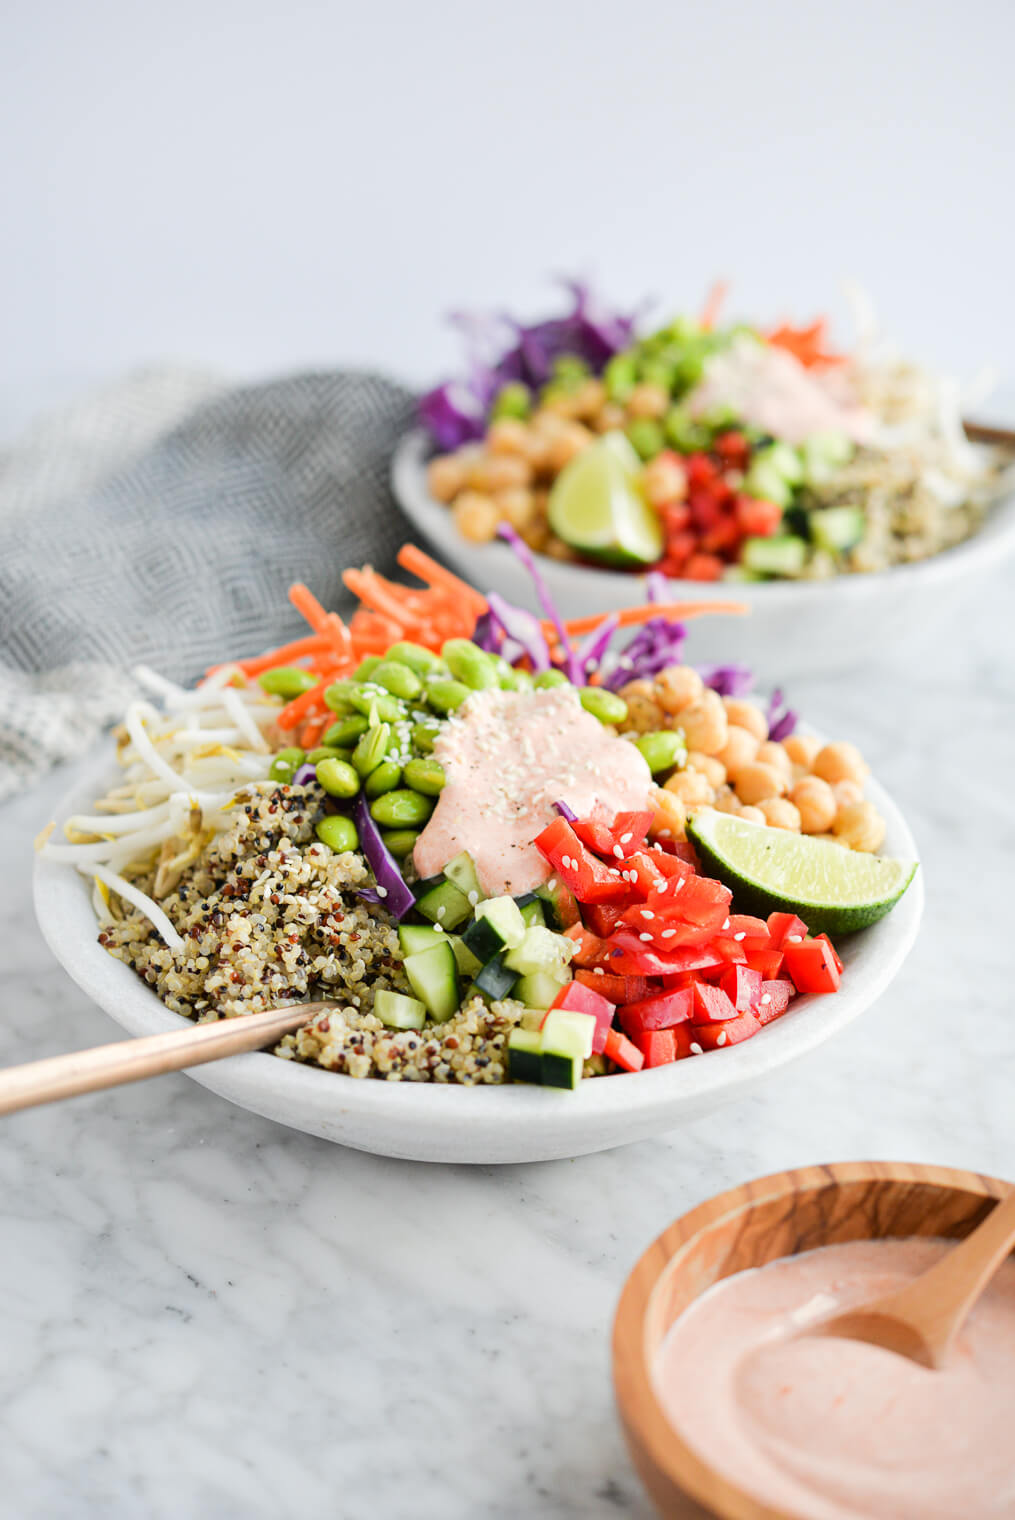 the side view of two thai red curry buddha bowls filled with quinoa, colorful veggies, and a creamy red sauce sitting on a marble surface